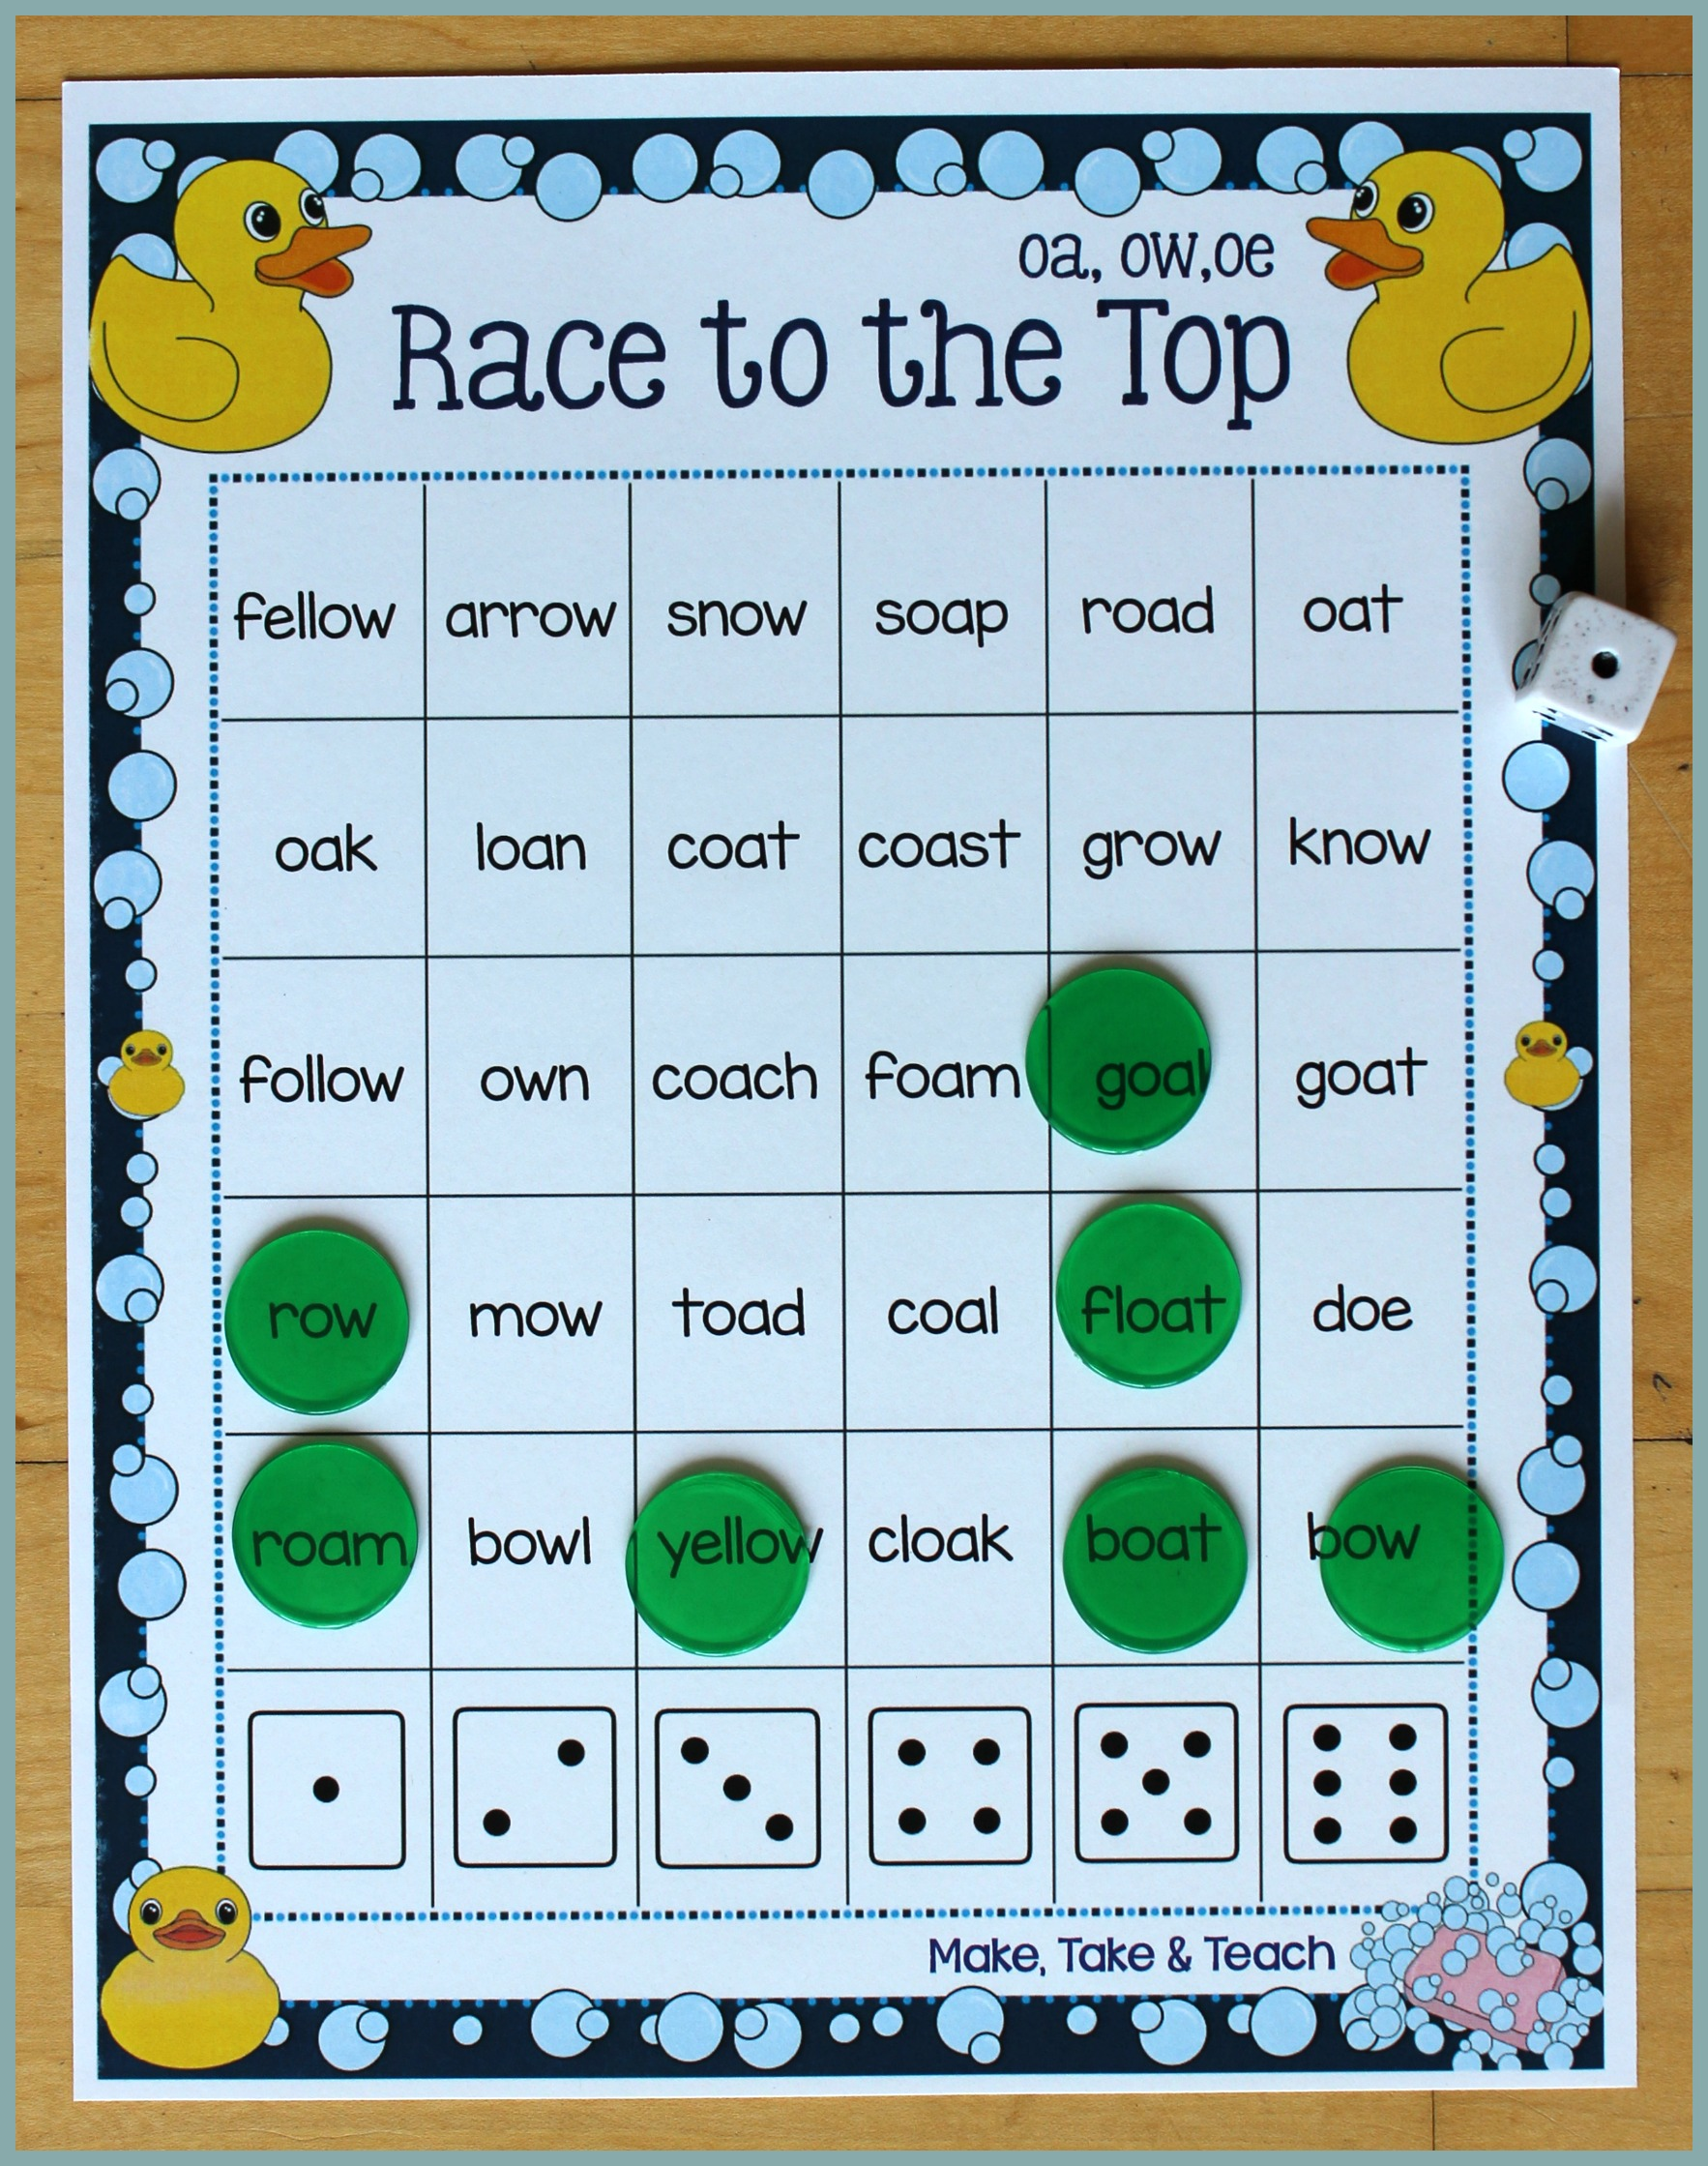 Teach Child How To Read Oa Words Phonics Sentences